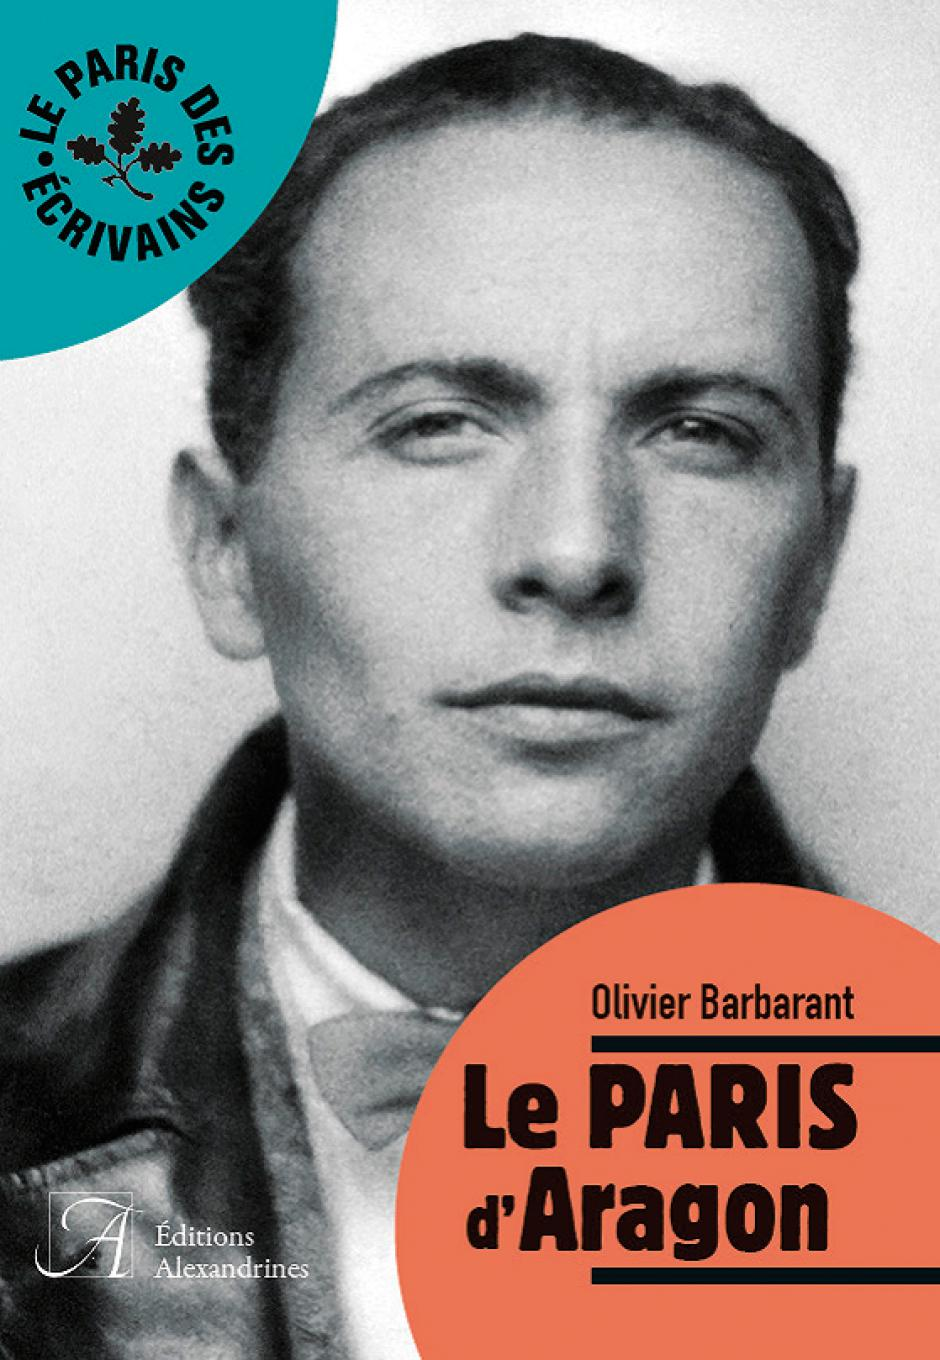 Le Paris d'Aragon, Olivier Barbarant